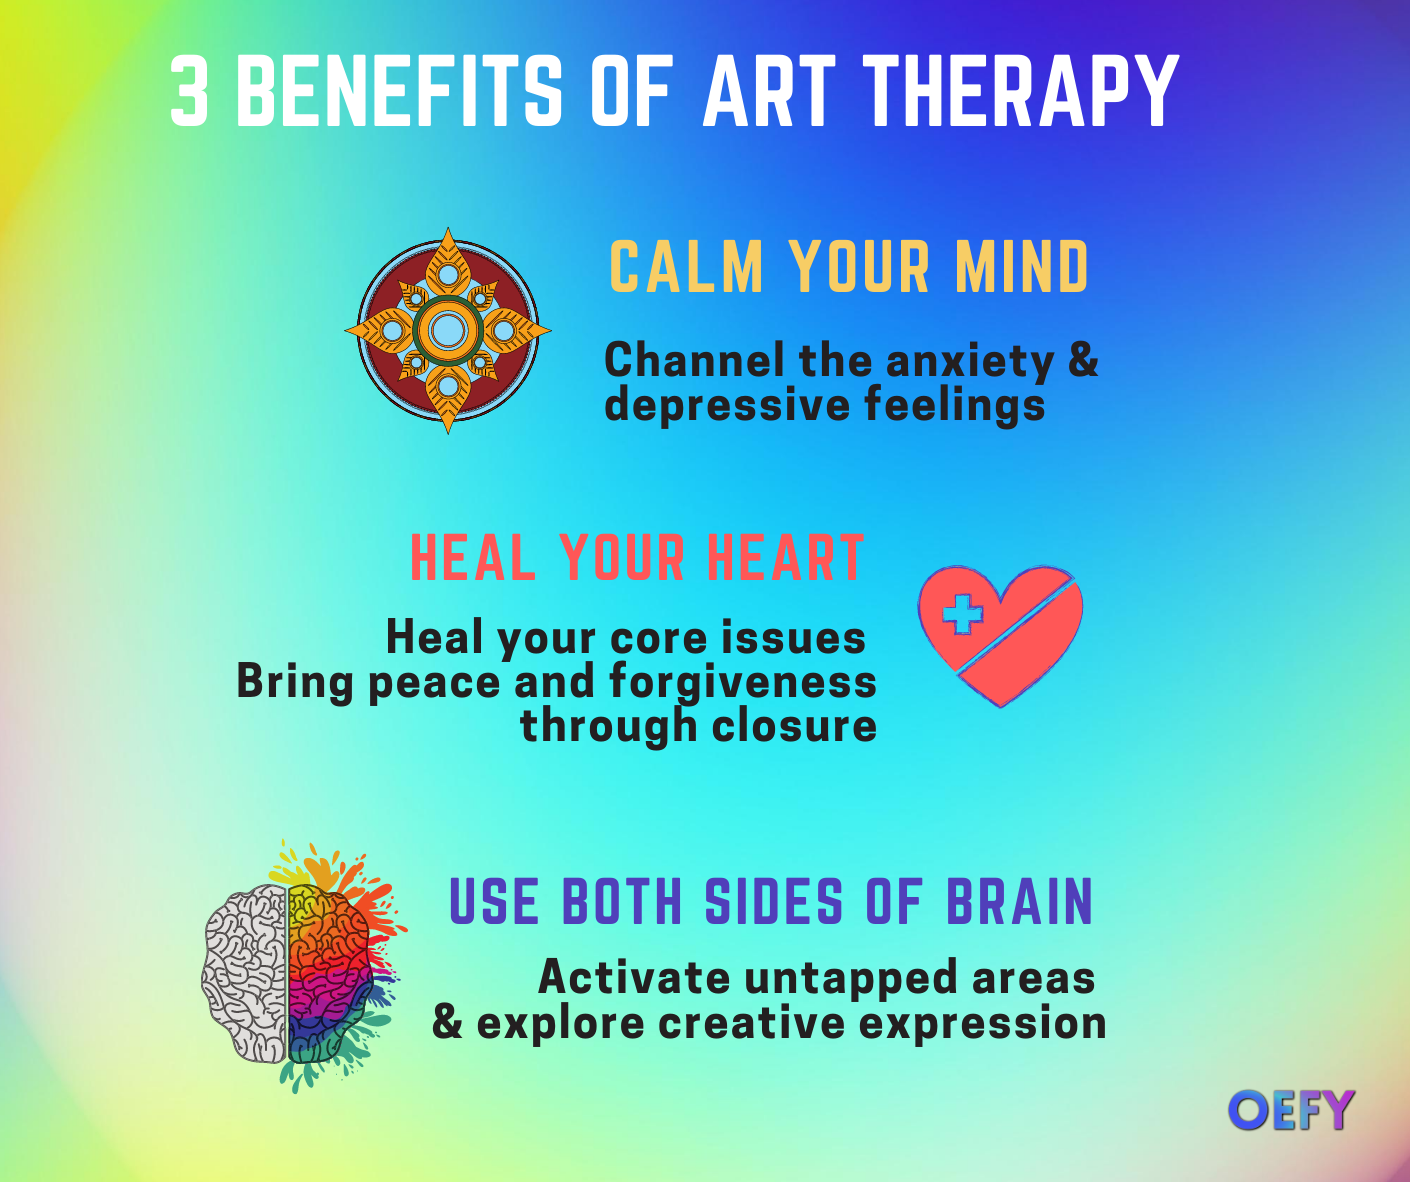 3 Benefits of Art Therapy